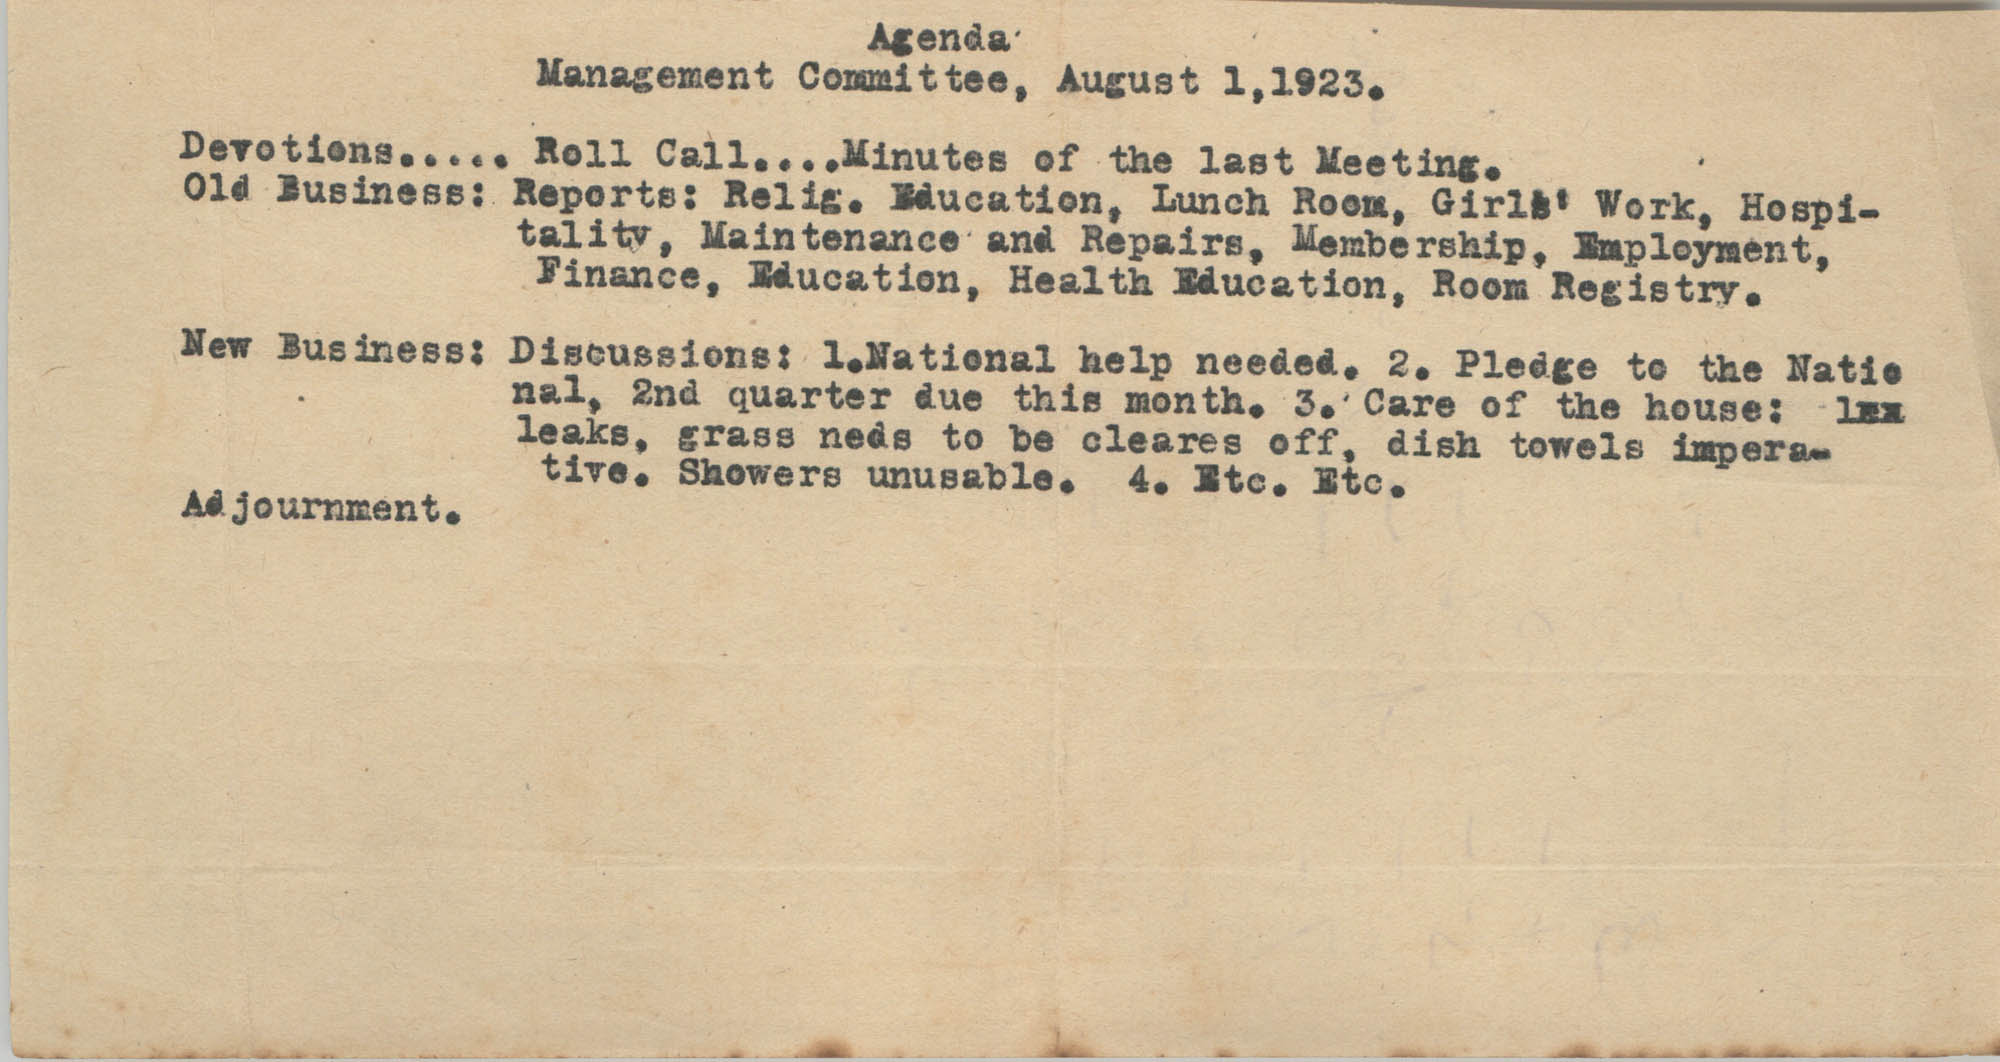 Agenda, Management Committee of the Coming Street Y.W.C.A., August 1, 1923